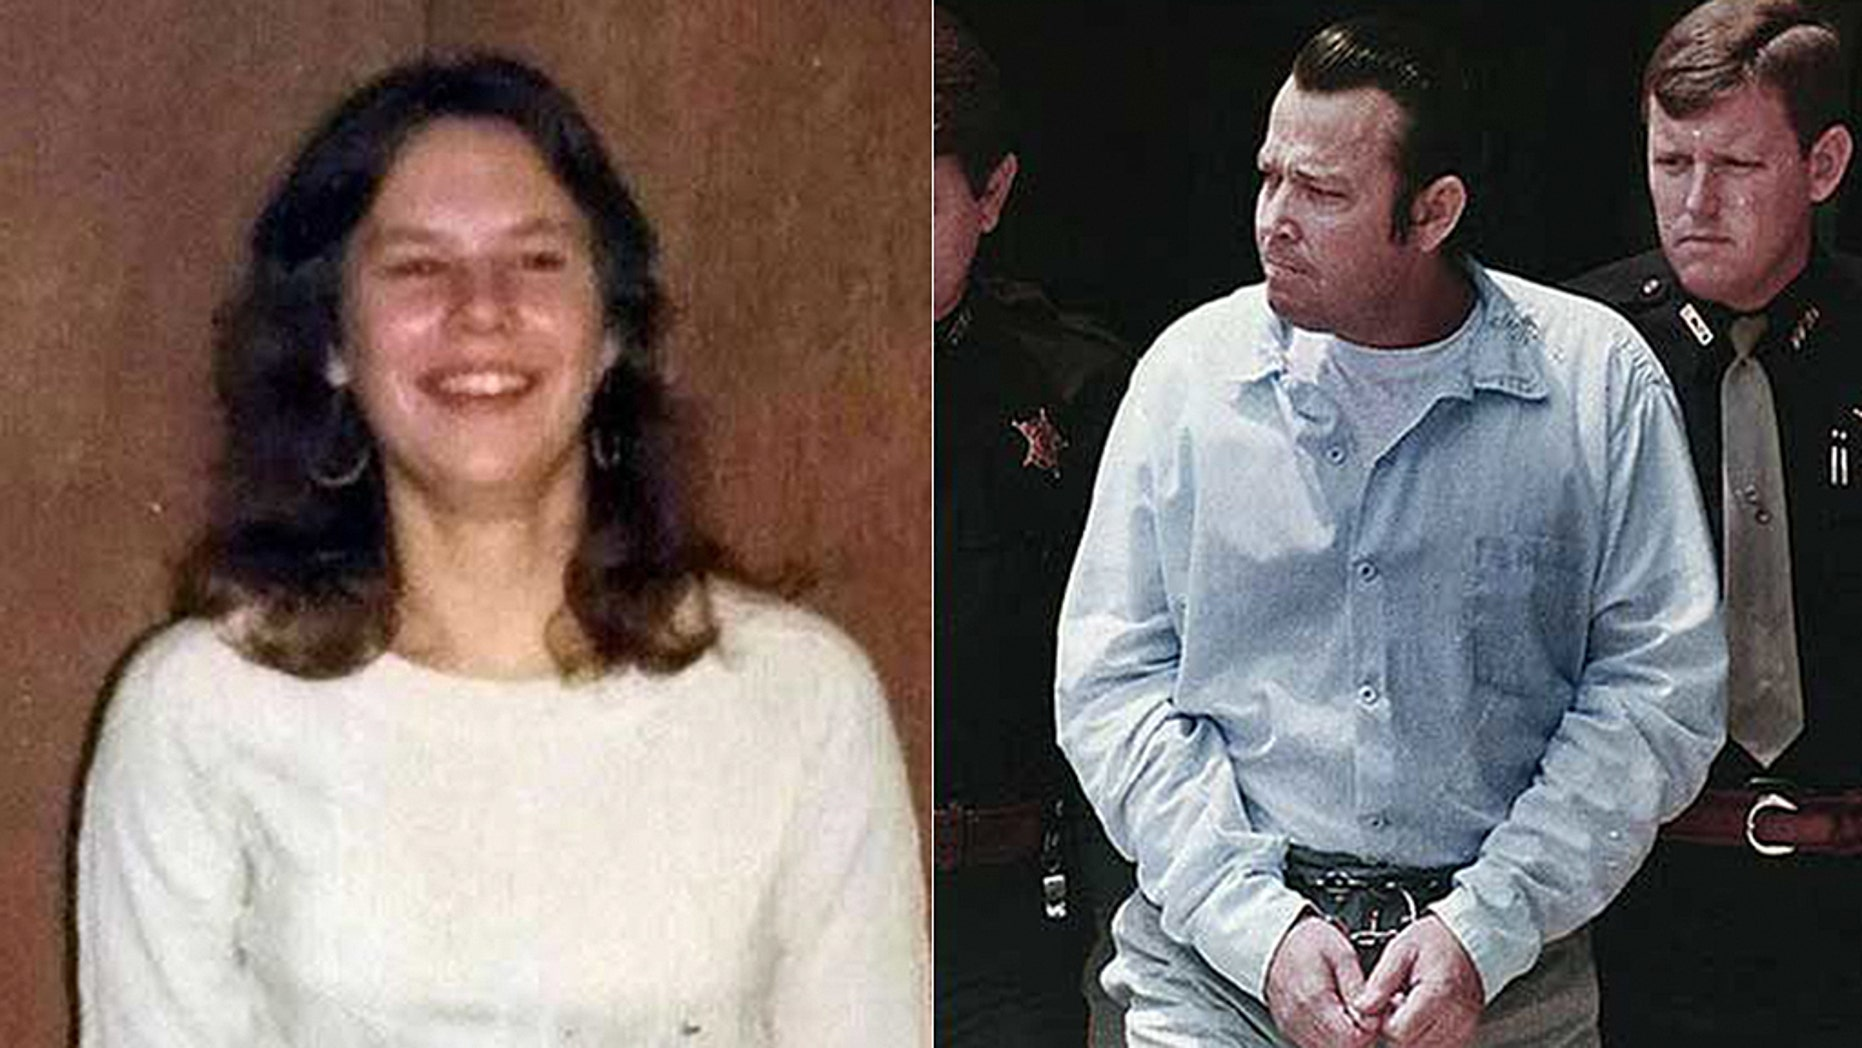 Twenty-year-old Anna Hlavka (l.) was slain in her Portland, Ore., apartment on July 24, 1979.Authorities said Thursday her killer, Jerry McFadden, was identified after DNA from the crime scene was submitted to GedMatch for genealogical analysis.